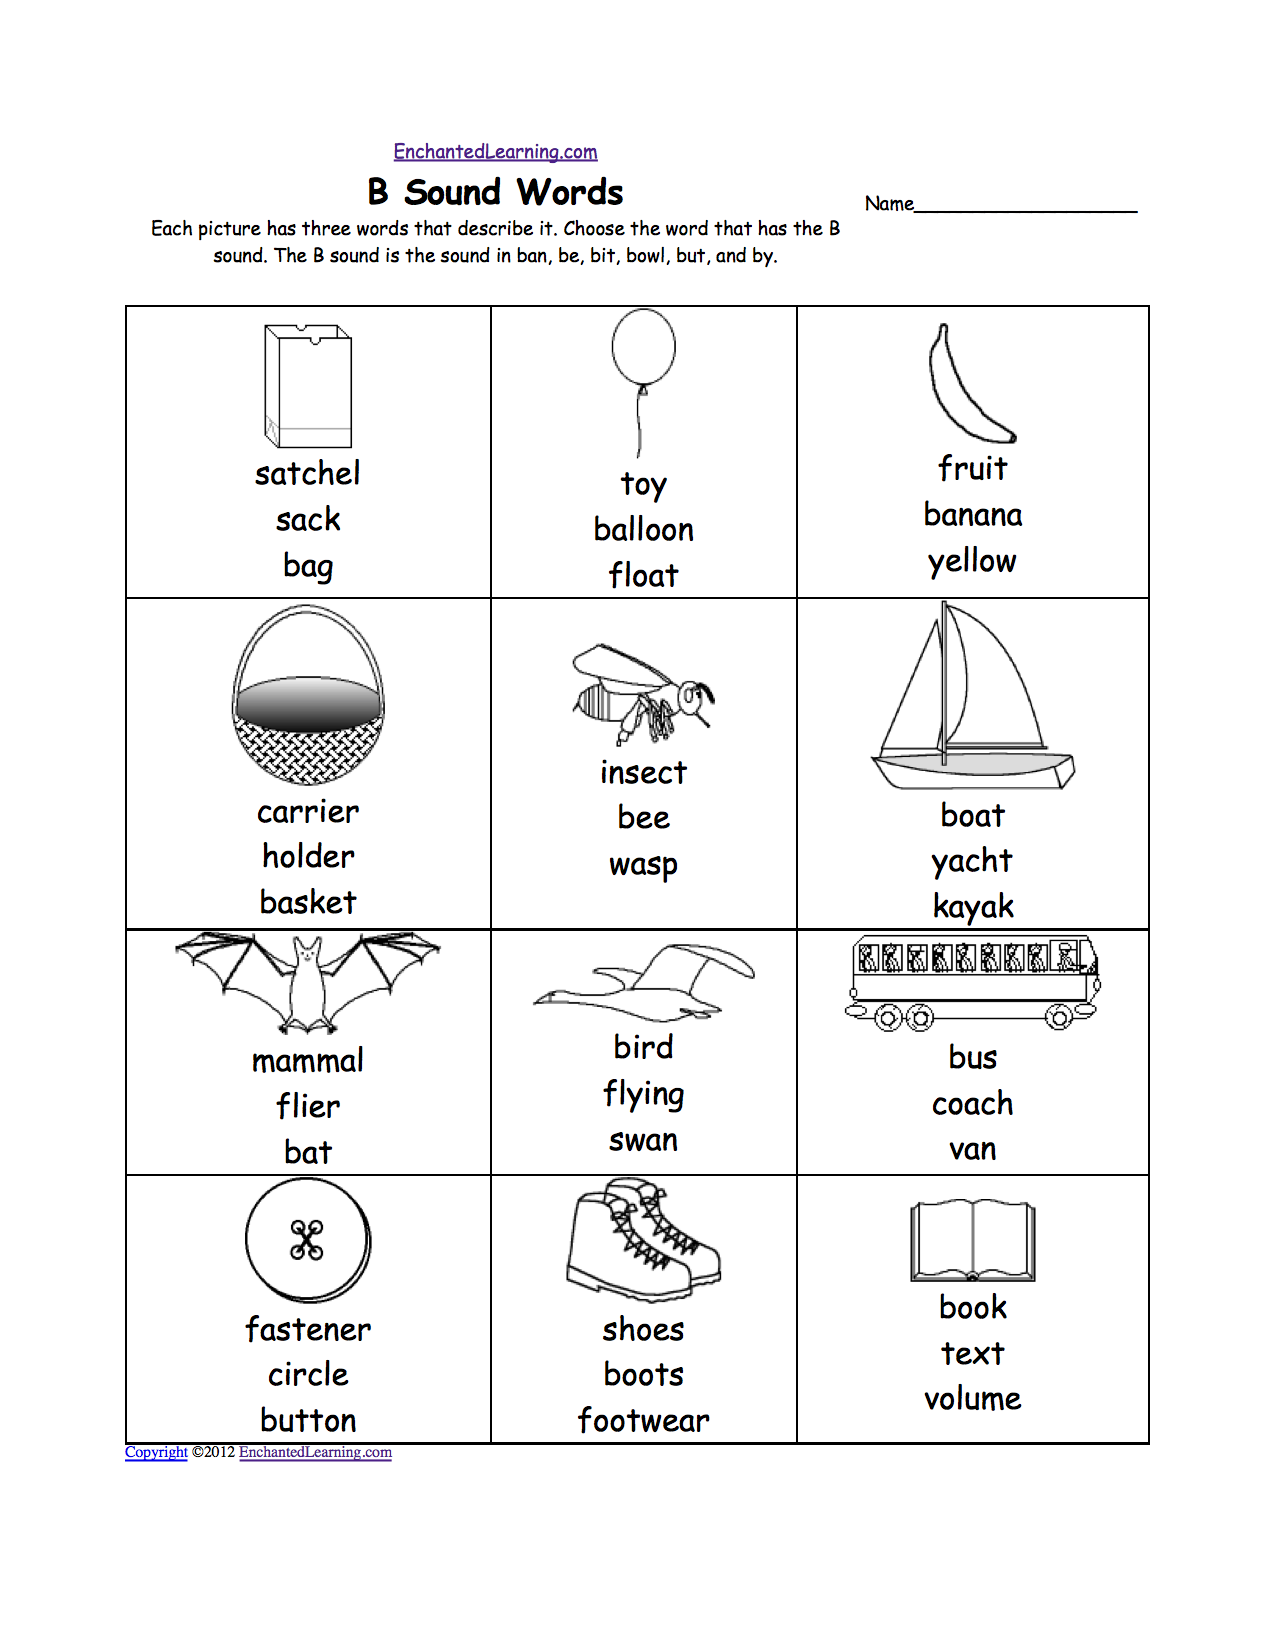 Aldiablosus  Outstanding Phonics Worksheets Multiple Choice Worksheets To Print  With Glamorous Quotbquot Sound Phonics Worksheet Multiple Choice Each Picture Has Three Words That Describe It Choose The Word That Has A Quotbquot Sound The Quotbquot Sound Is The Sound  With Alluring English Prepositions Exercises Worksheets Also Distributive Property Worksheets For Th Grade In Addition Handwriting Worksheets Az And Compound Words Worksheet Grade  As Well As Small Letters Worksheets Additionally Middle School Adjective Worksheets From Enchantedlearningcom With Aldiablosus  Glamorous Phonics Worksheets Multiple Choice Worksheets To Print  With Alluring Quotbquot Sound Phonics Worksheet Multiple Choice Each Picture Has Three Words That Describe It Choose The Word That Has A Quotbquot Sound The Quotbquot Sound Is The Sound  And Outstanding English Prepositions Exercises Worksheets Also Distributive Property Worksheets For Th Grade In Addition Handwriting Worksheets Az From Enchantedlearningcom